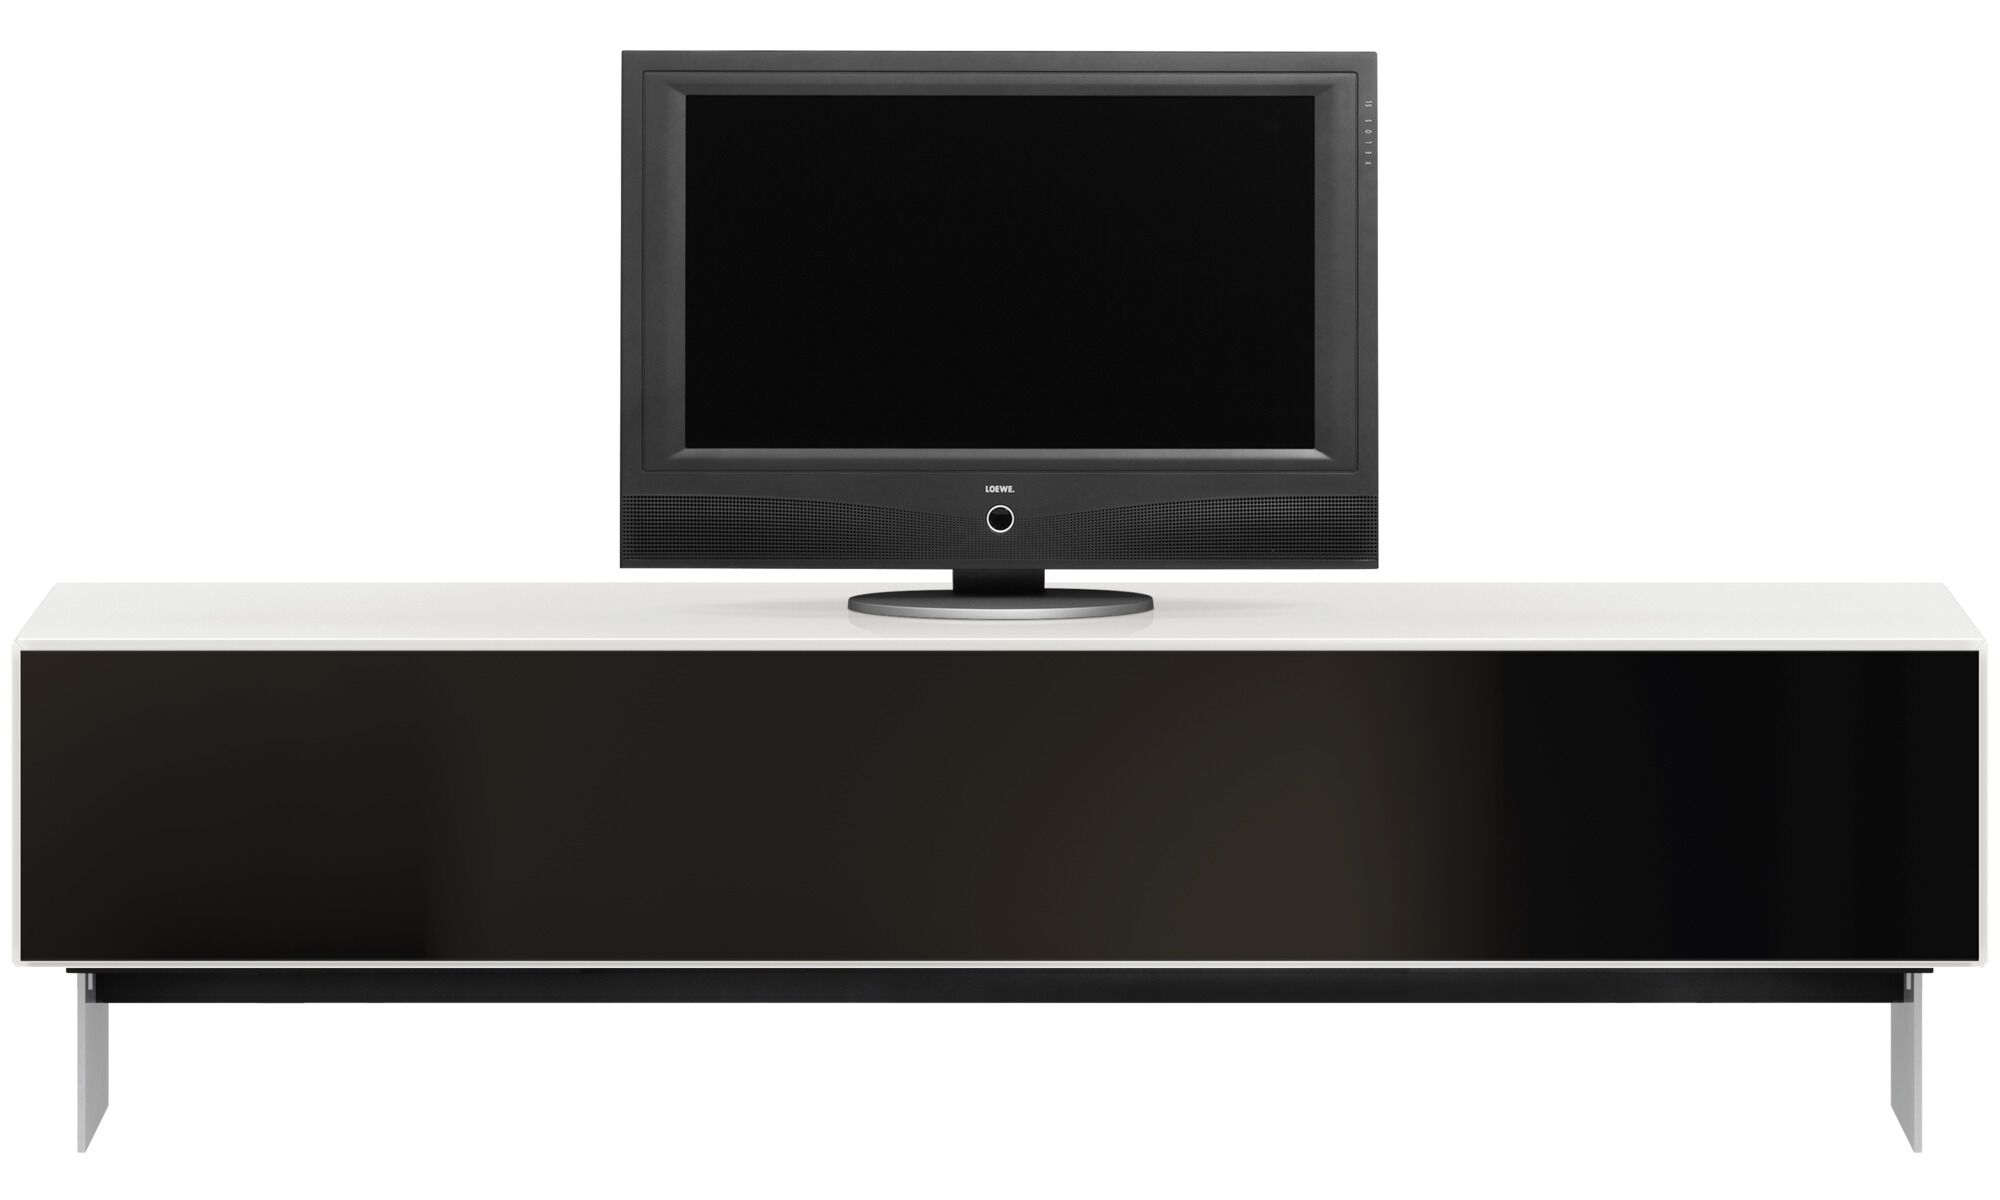 Tv Units   Lugano Entertainment Unit With Drop Down Door   White   Lacquered